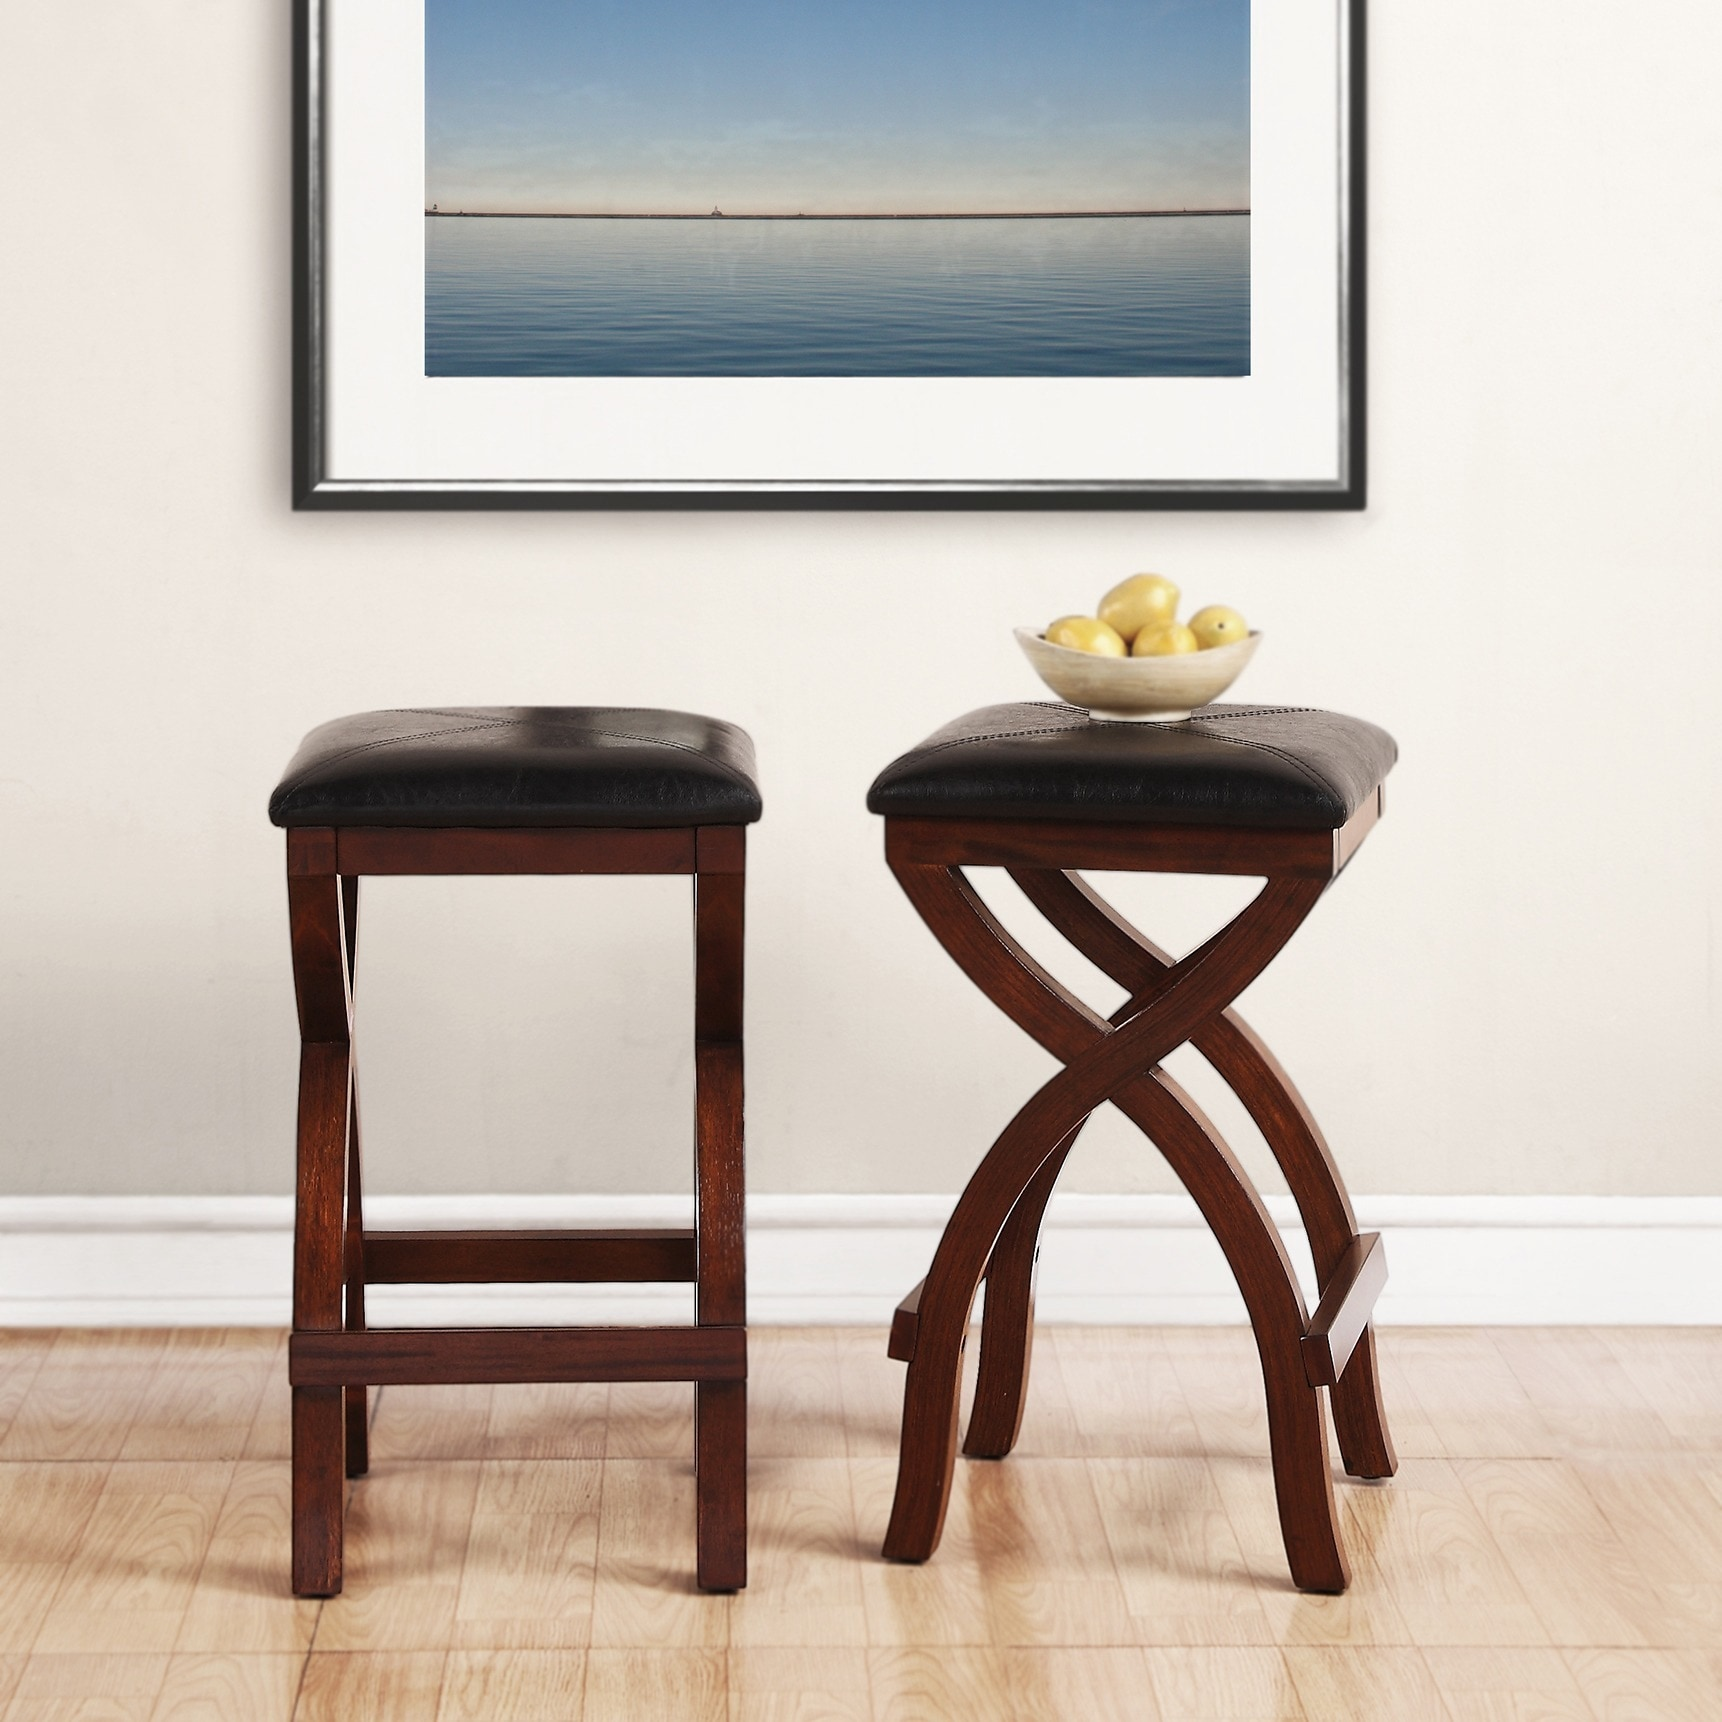 Jaidyn Espresso X Base 24 Inch Backless Counter Height Stool Set Of 2 By Inspire Q Clic On Free Shipping Today 7588193